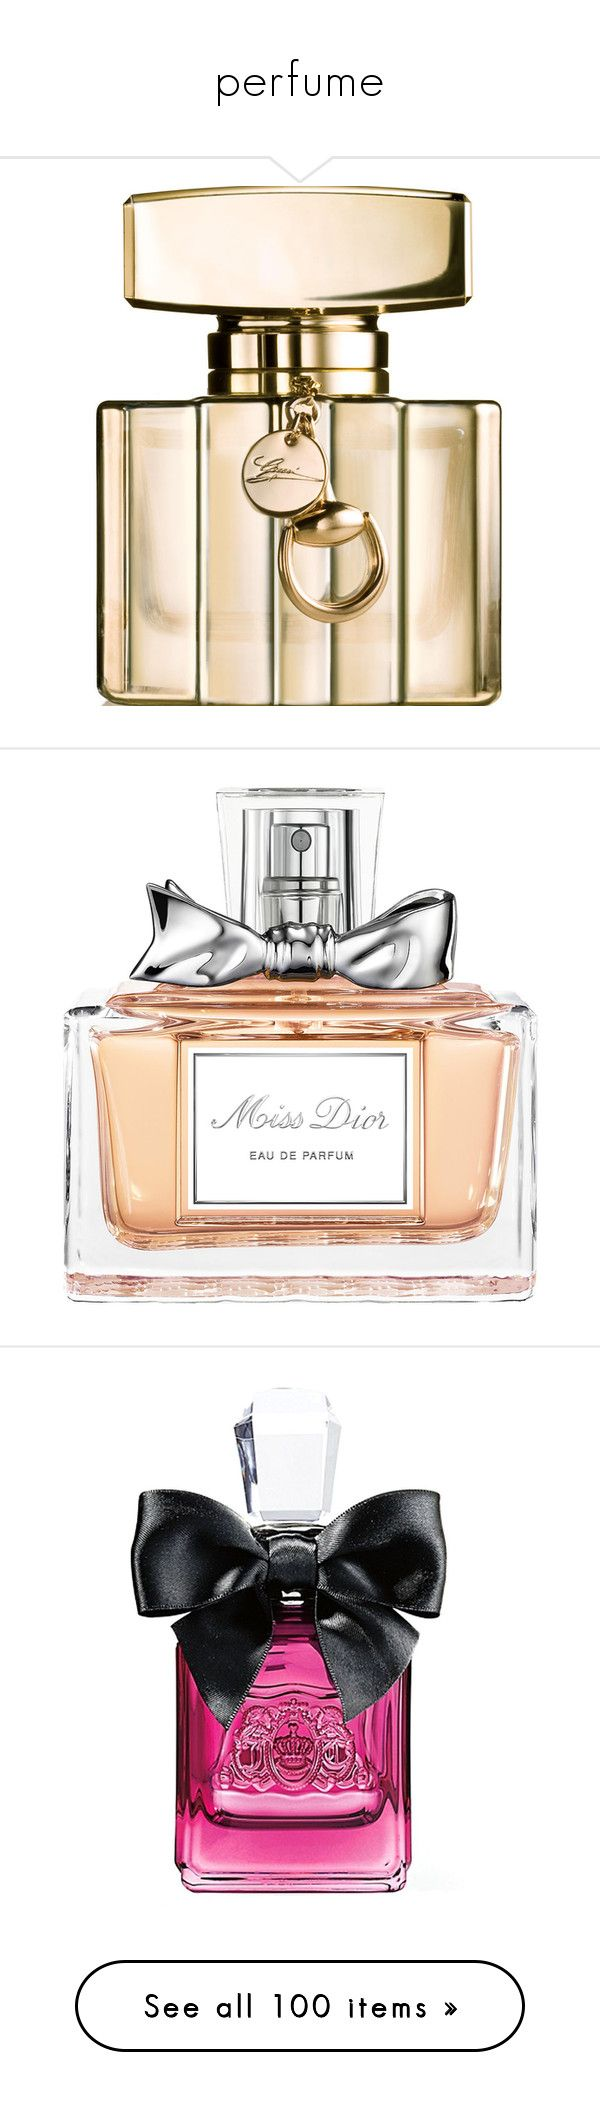 """""""perfume"""" by darlingchick ❤ liked on Polyvore featuring beauty products, fragrance, perfume, makeup, beauty, cosmetics, edp perfume, gucci fragrance, eau de parfum perfume and gucci"""